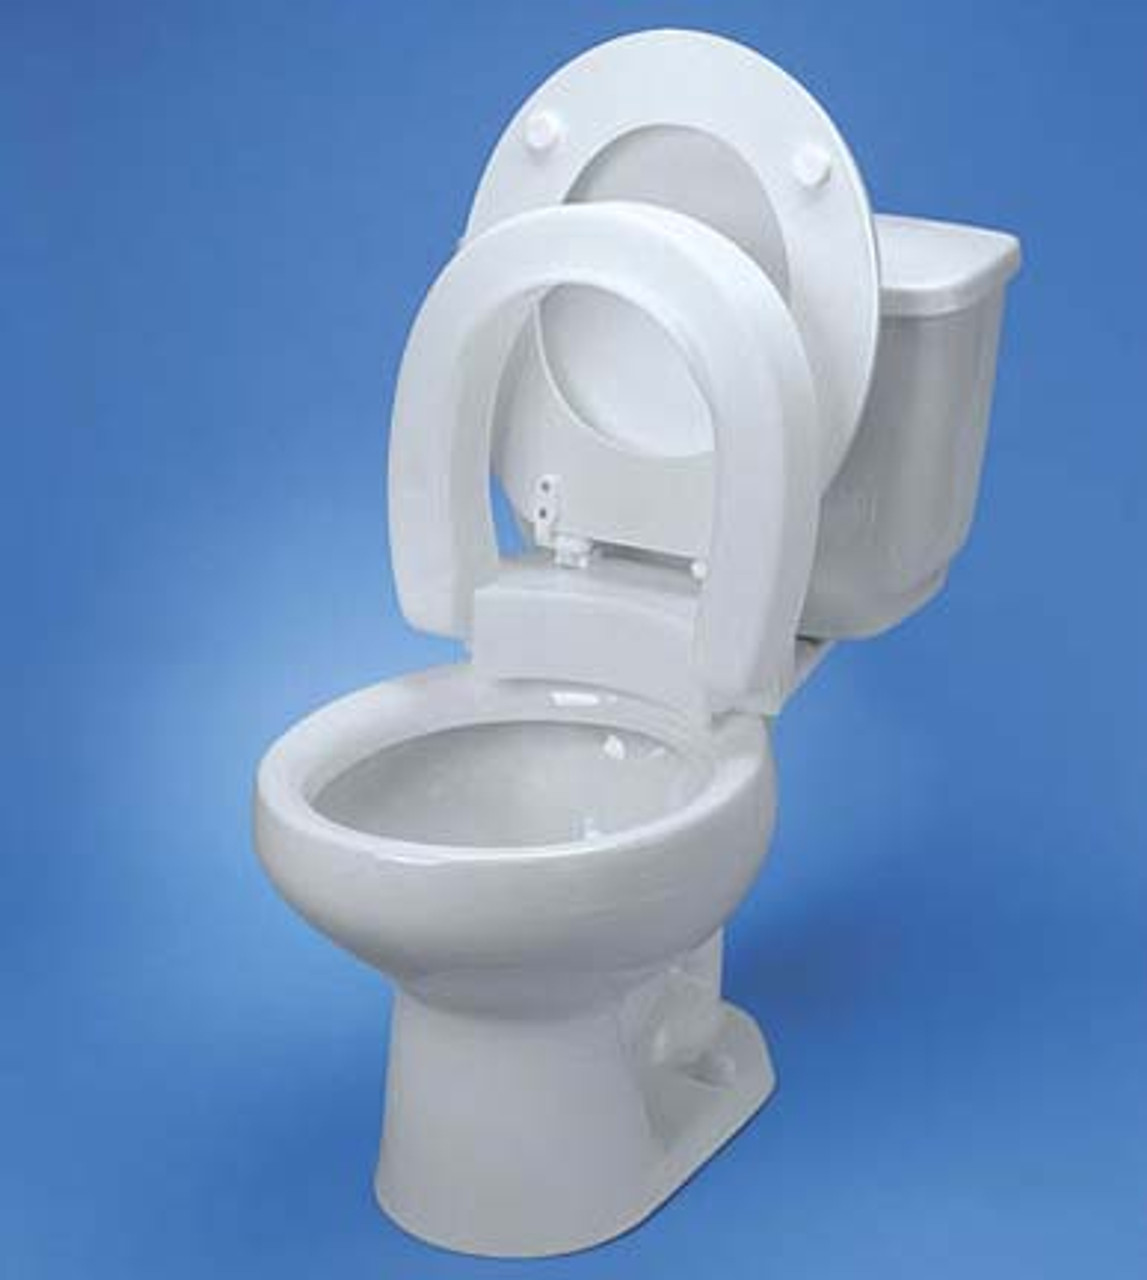 Excellent Maddak Tall Ette Hinged Elevated Toilet Seat For Elongated Commodes 3 H 350 Lbs Capacity Spiritservingveterans Wood Chair Design Ideas Spiritservingveteransorg